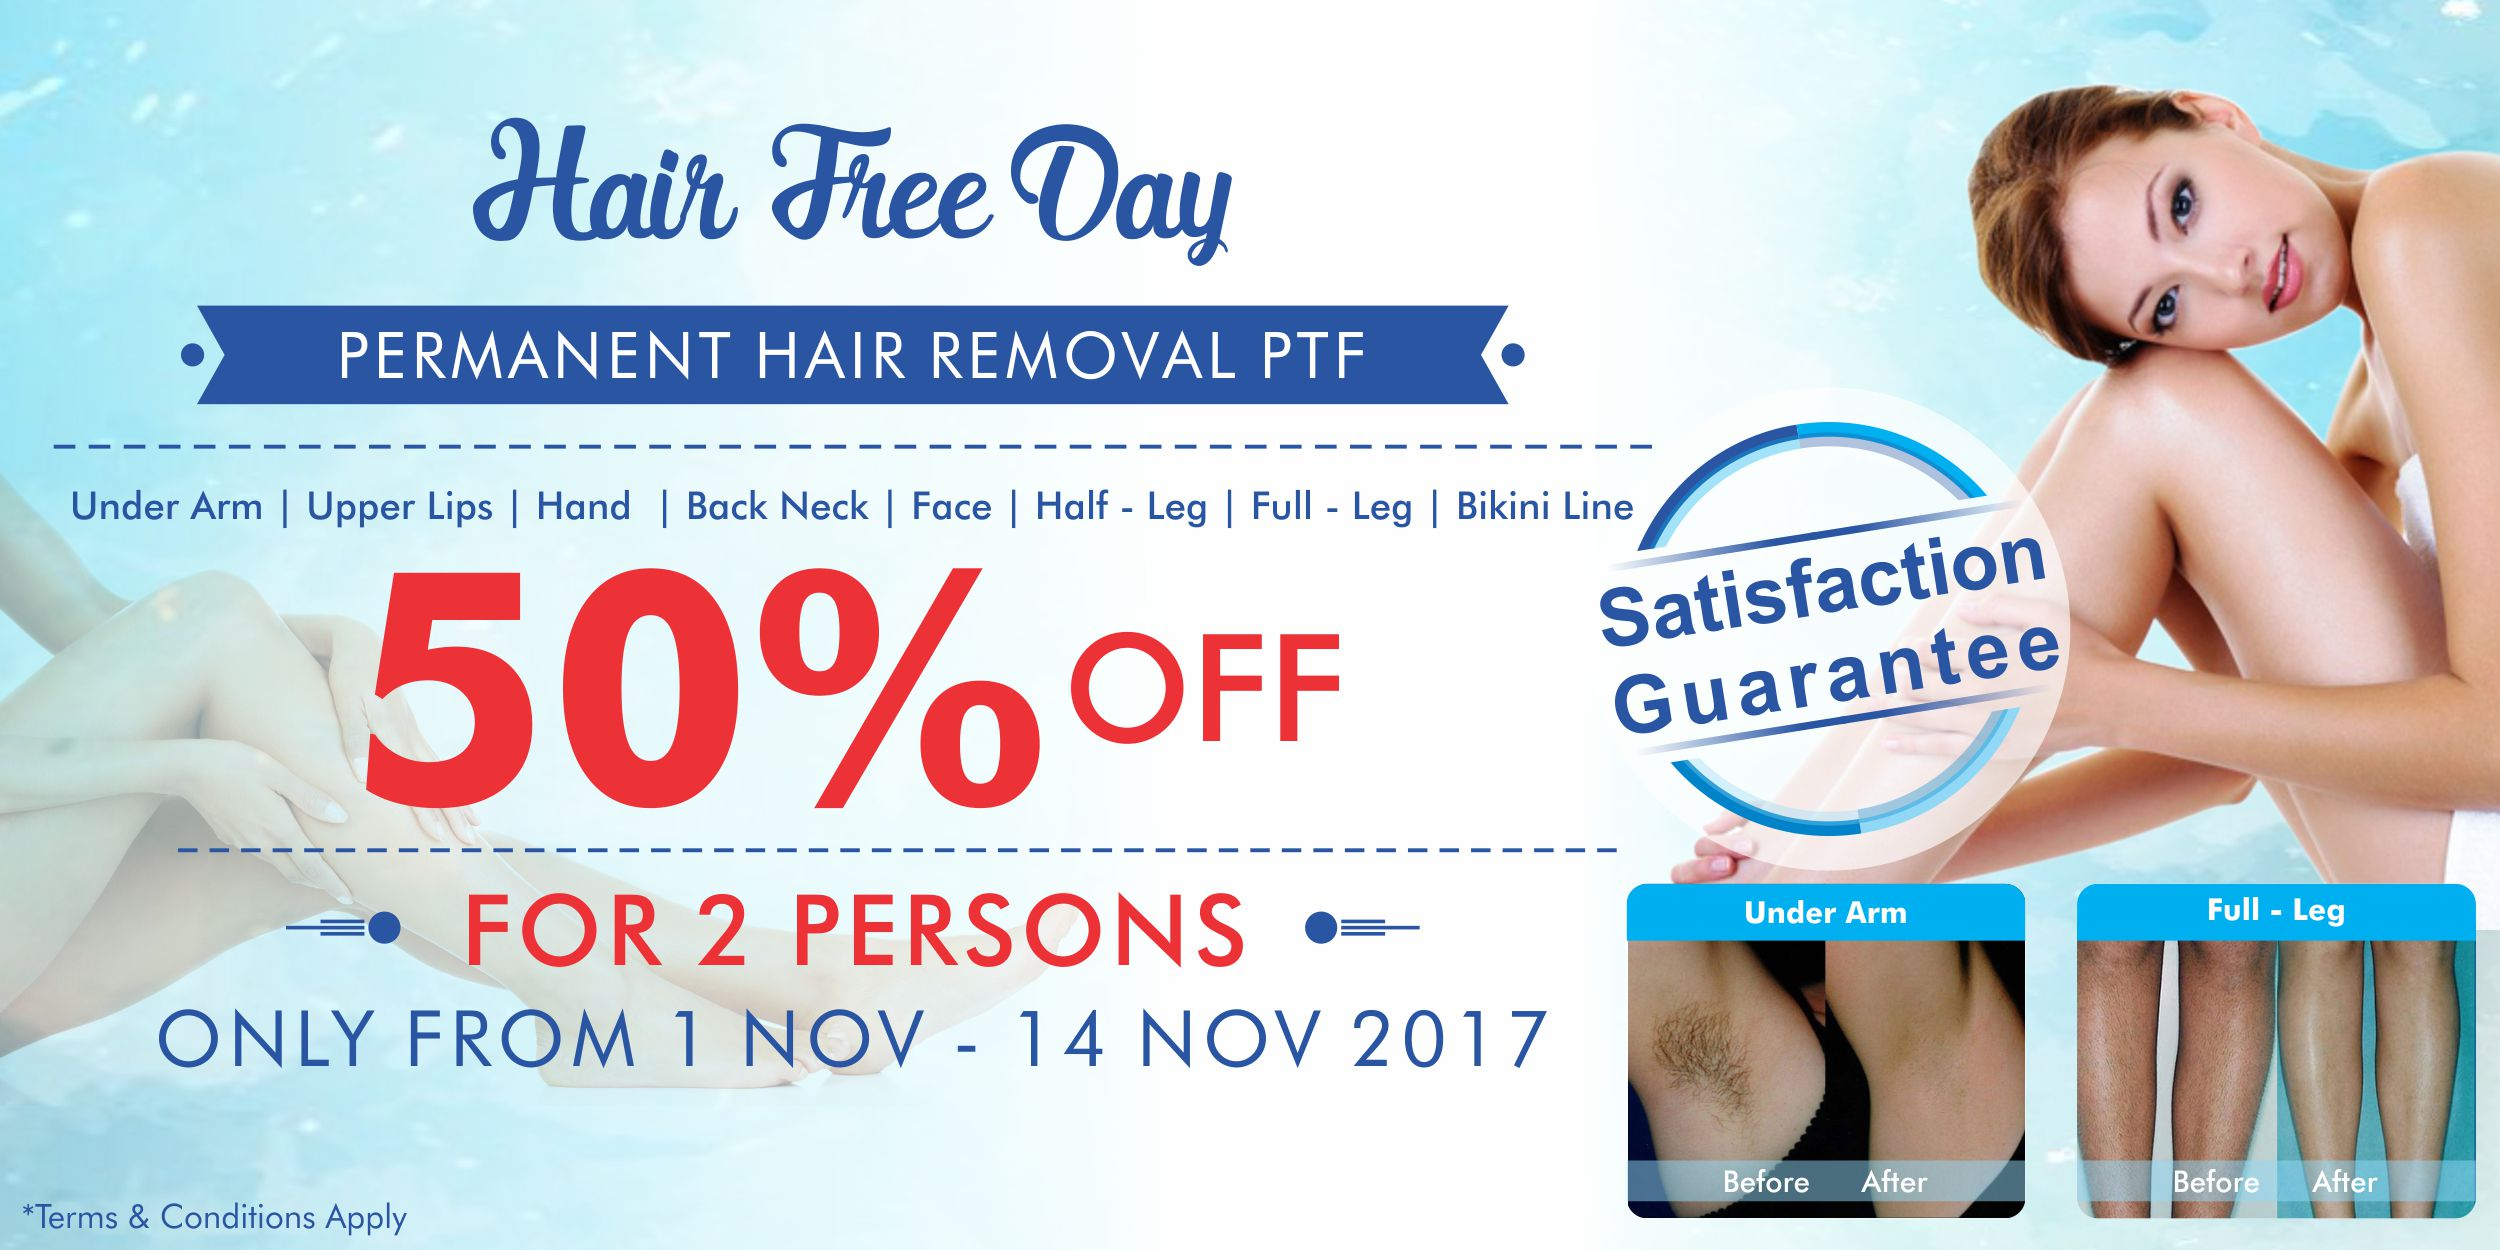 eska group batam 171001to14-hair-free-day-50-percent-for-2-person-slider